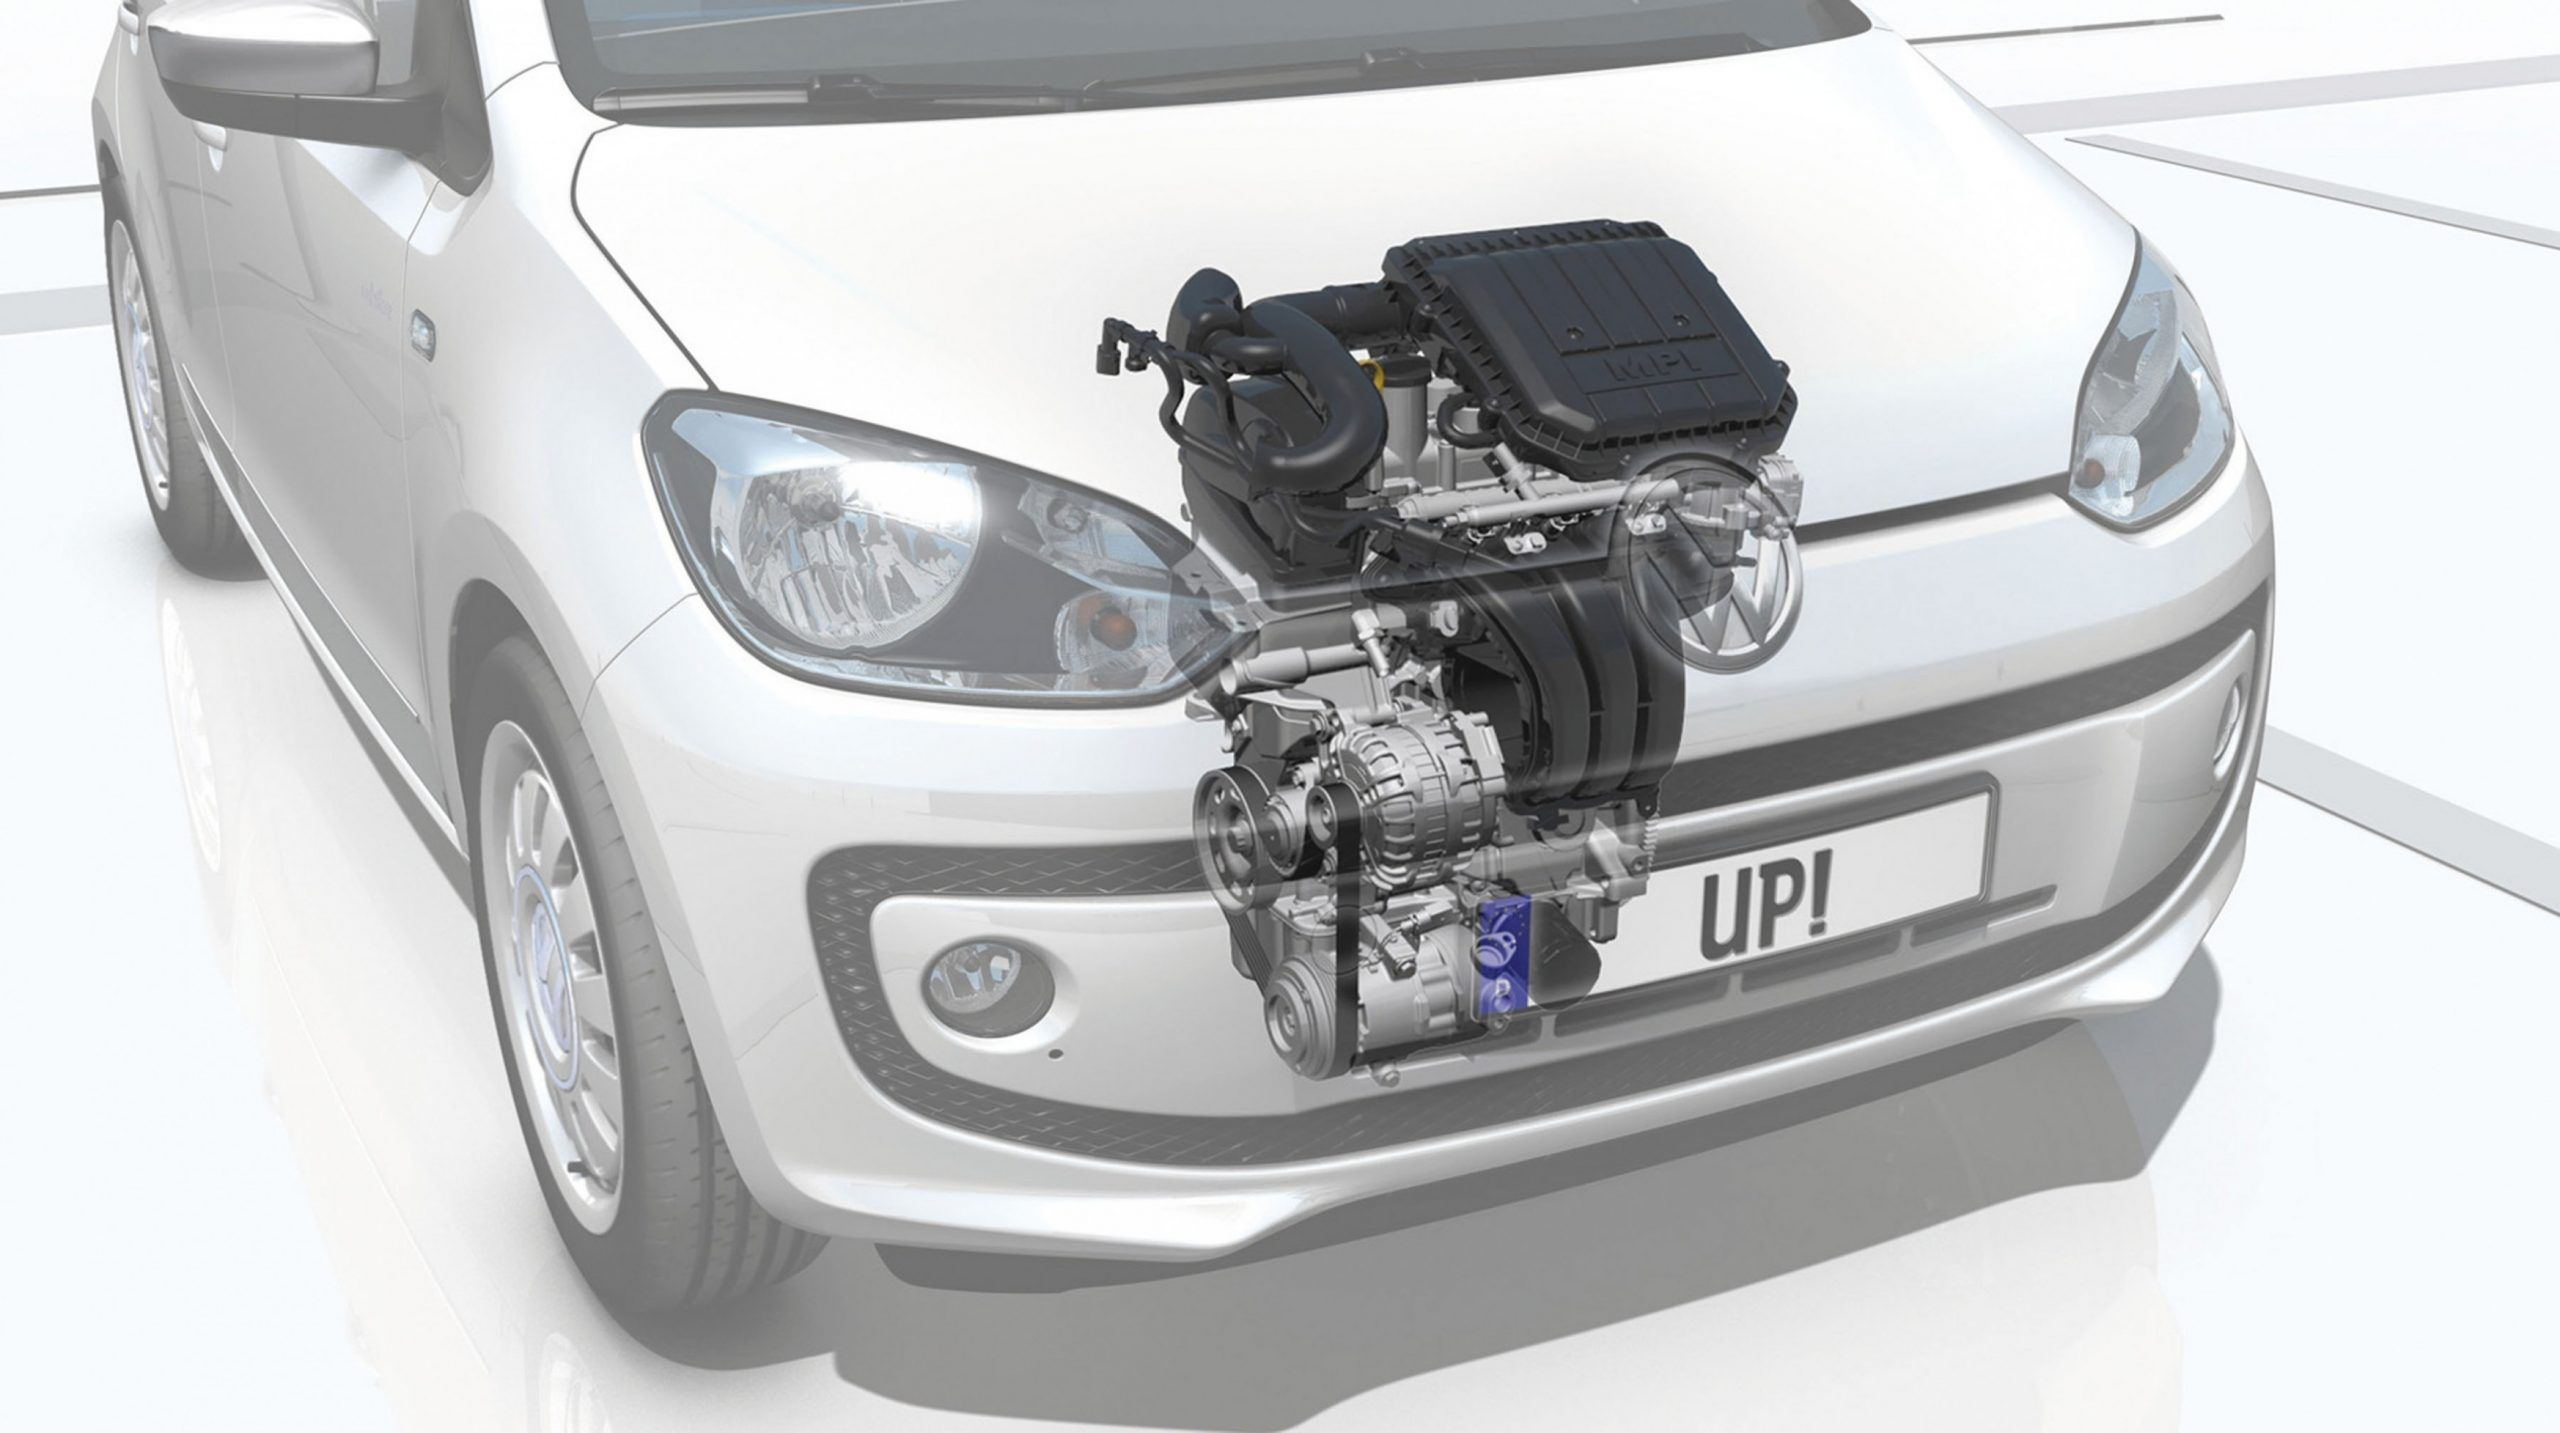 Vw Up Engine Diagram Video Di 2020